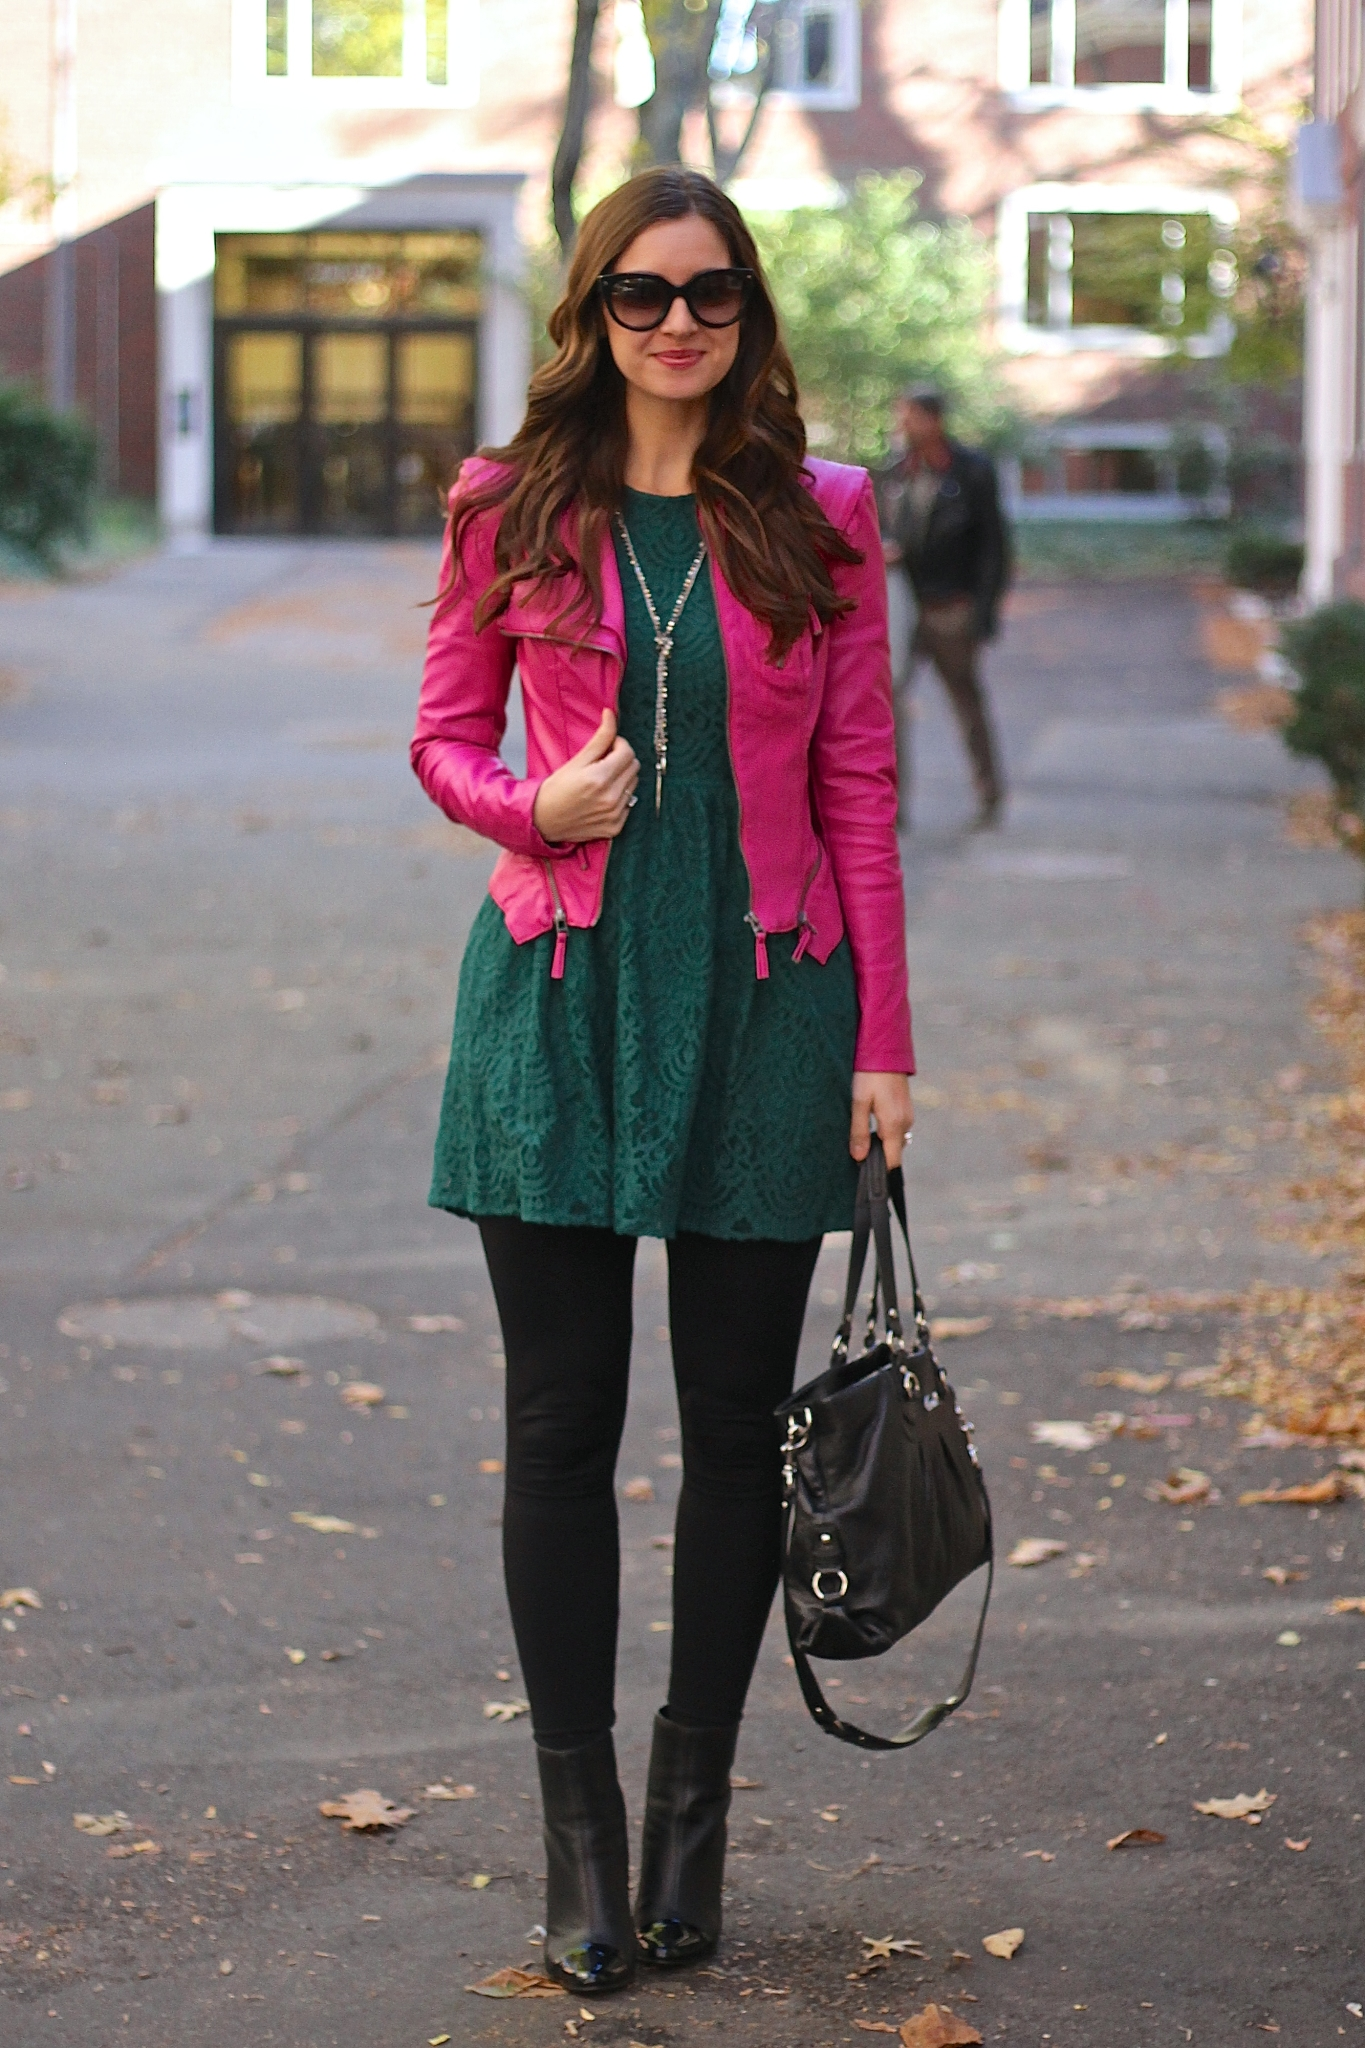 Emerald Lace Fit Flare Dress With Hot Pink Leather Jacket